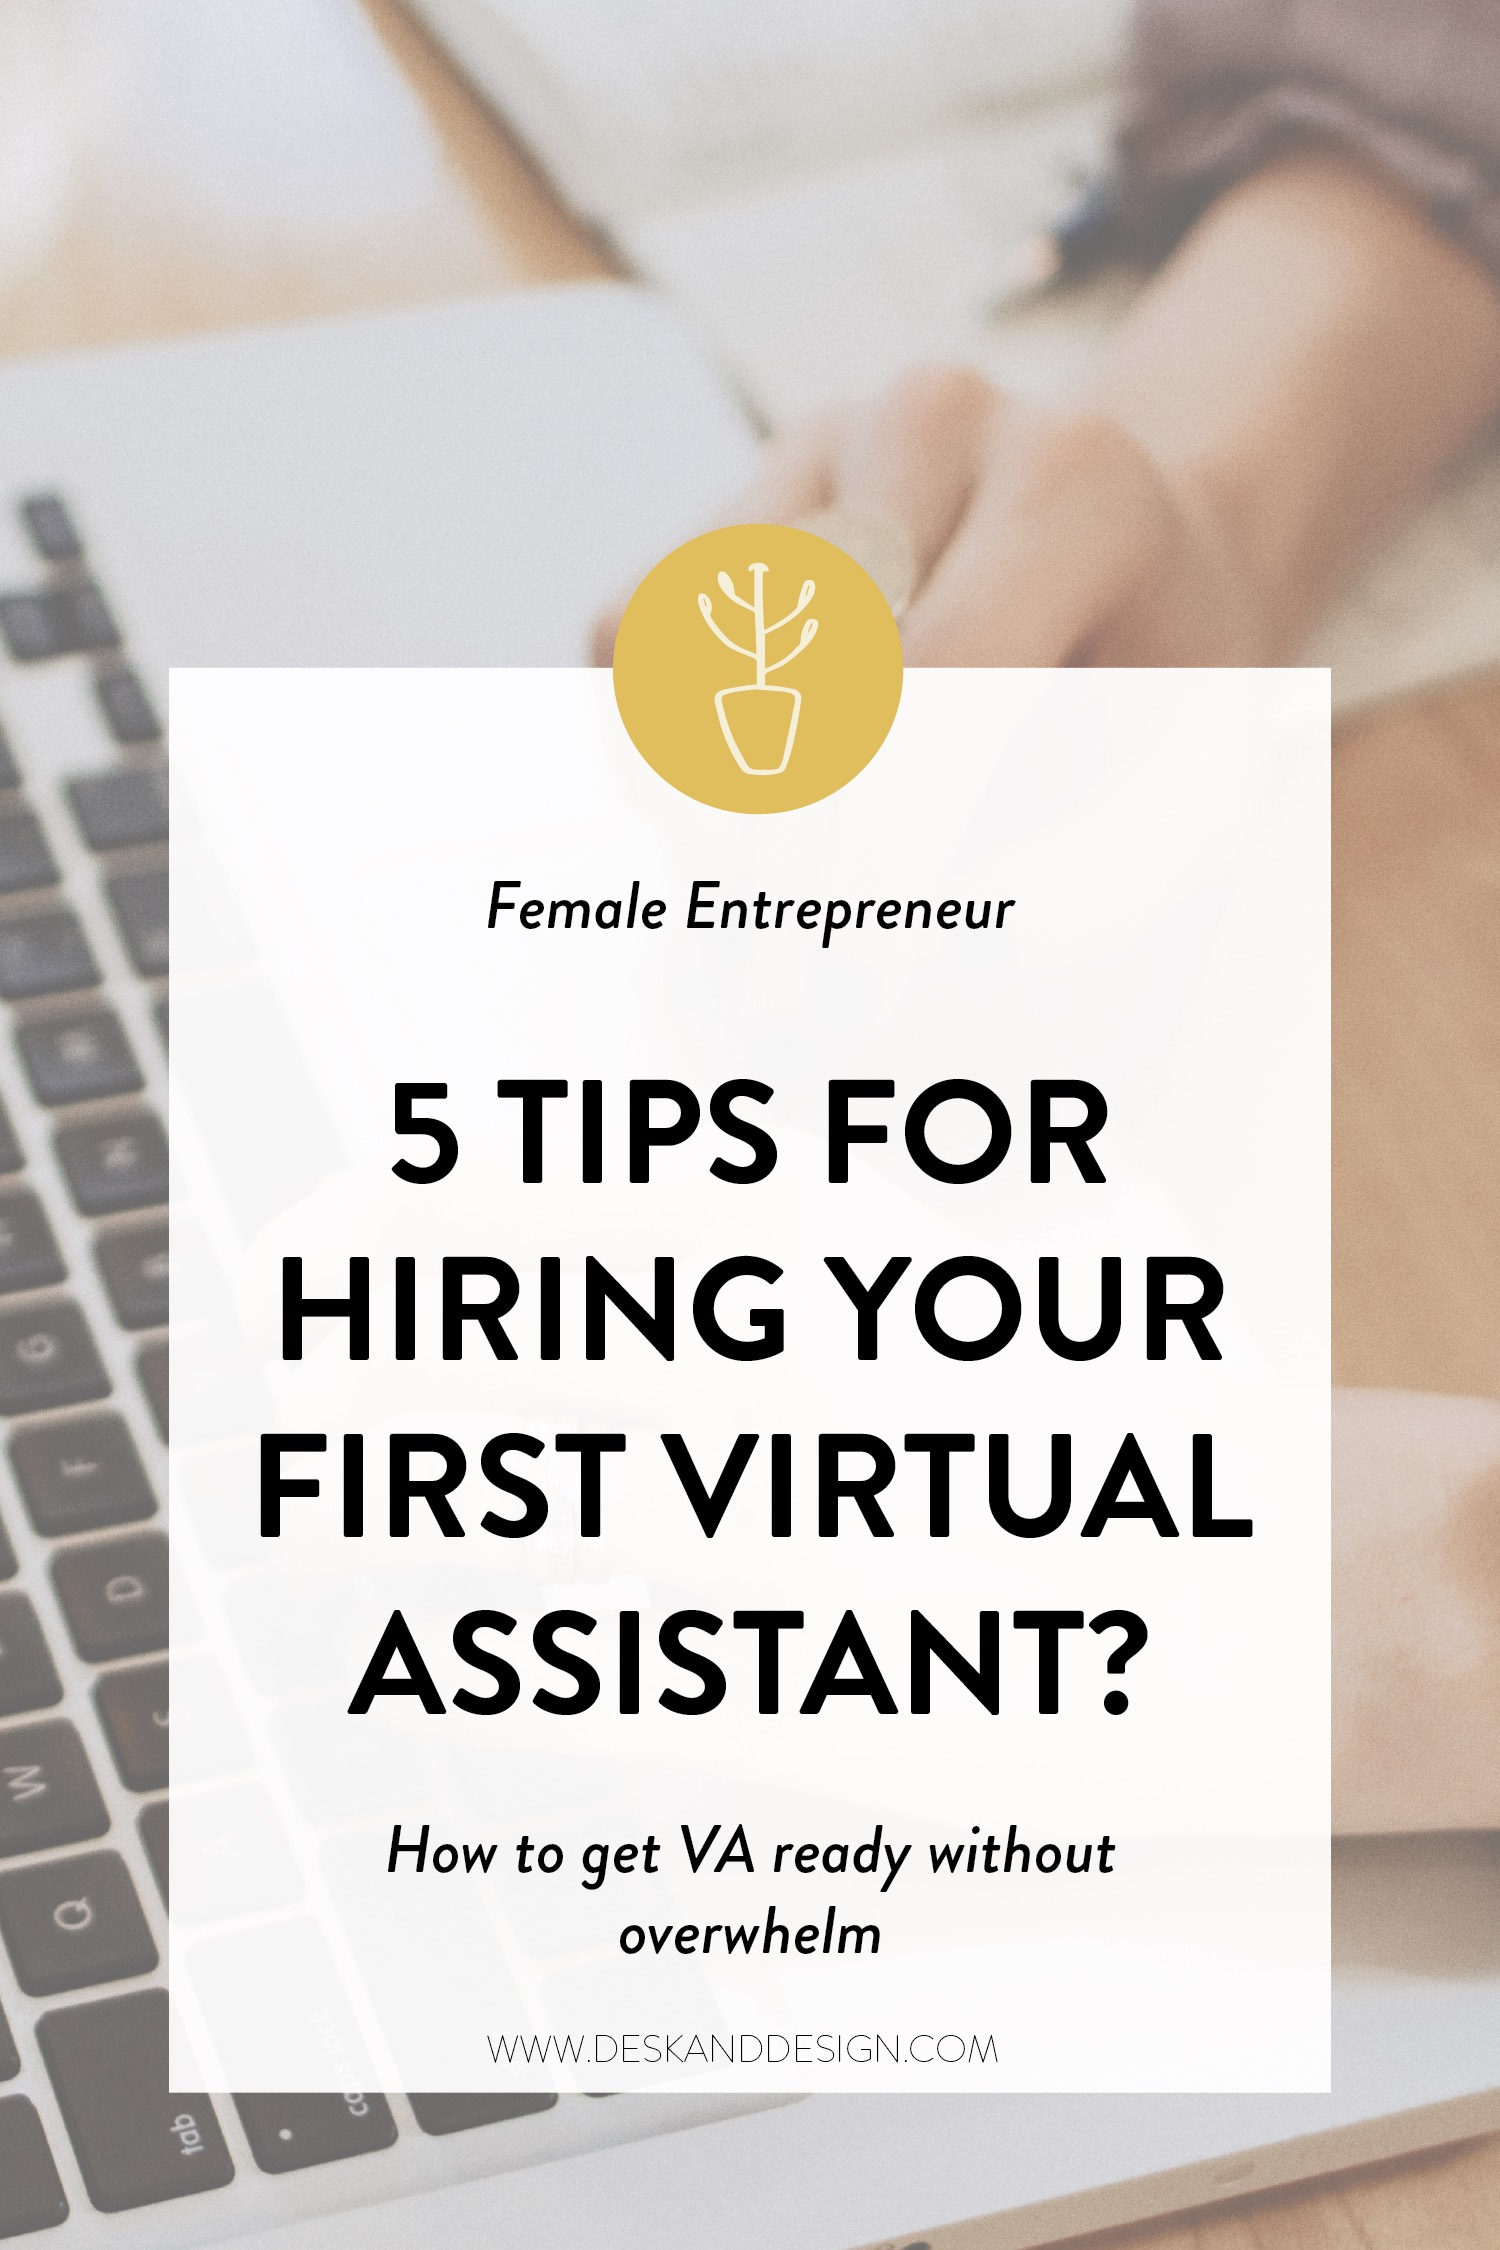 5 Tips for hiring your first virtual assistant. How to get VA ready without the overwhelm.jpg